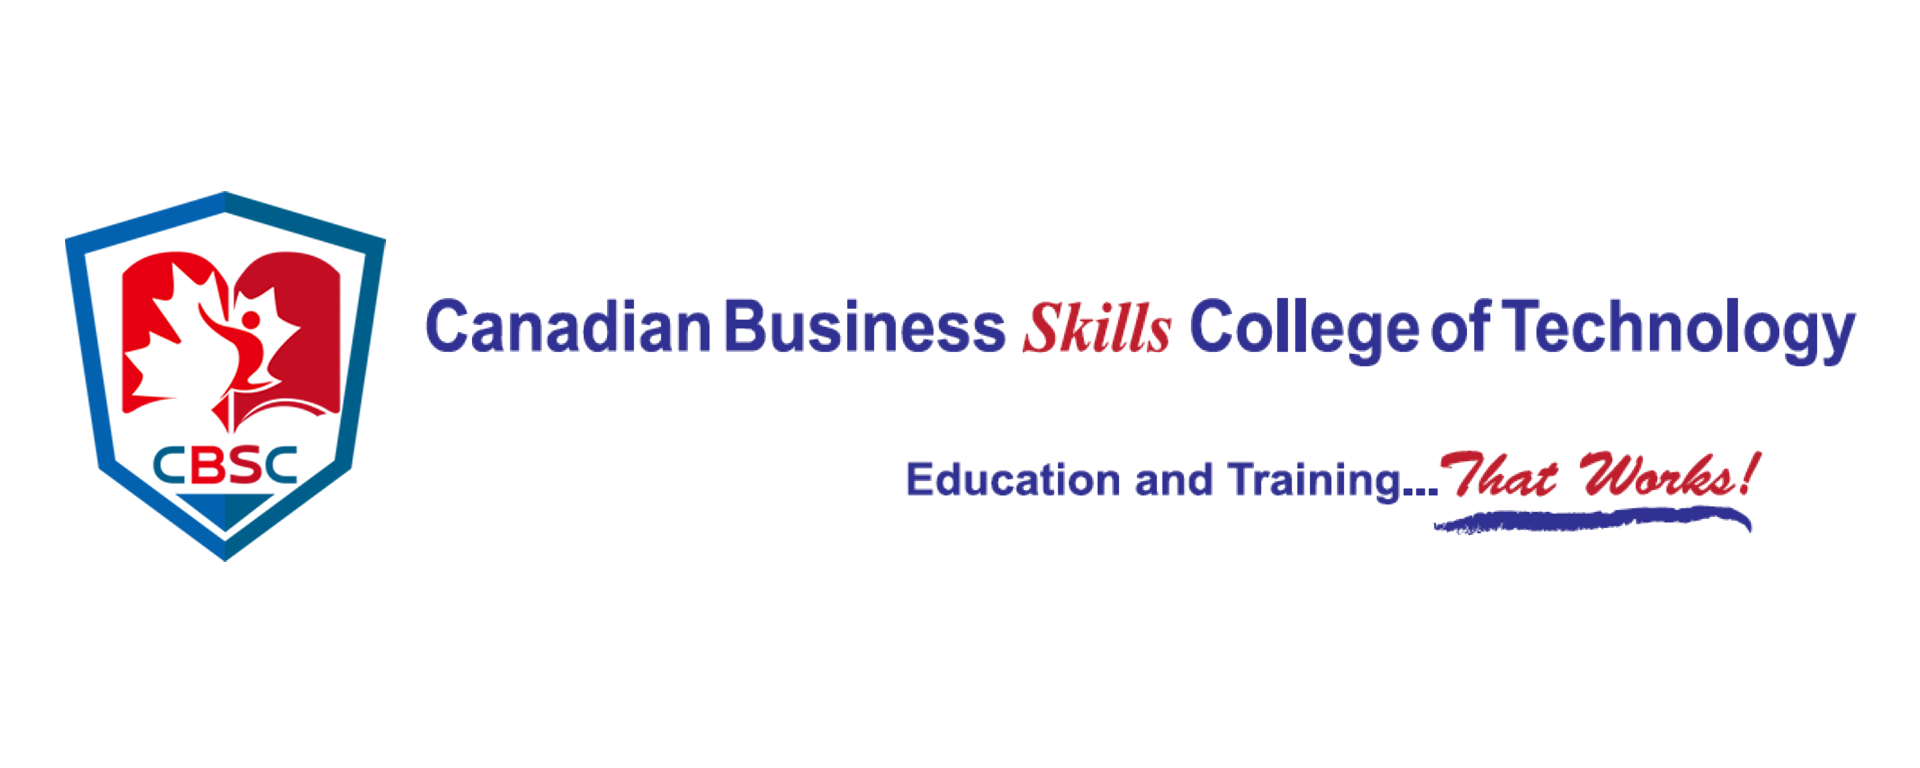 Canadian Business Skills College of Technology